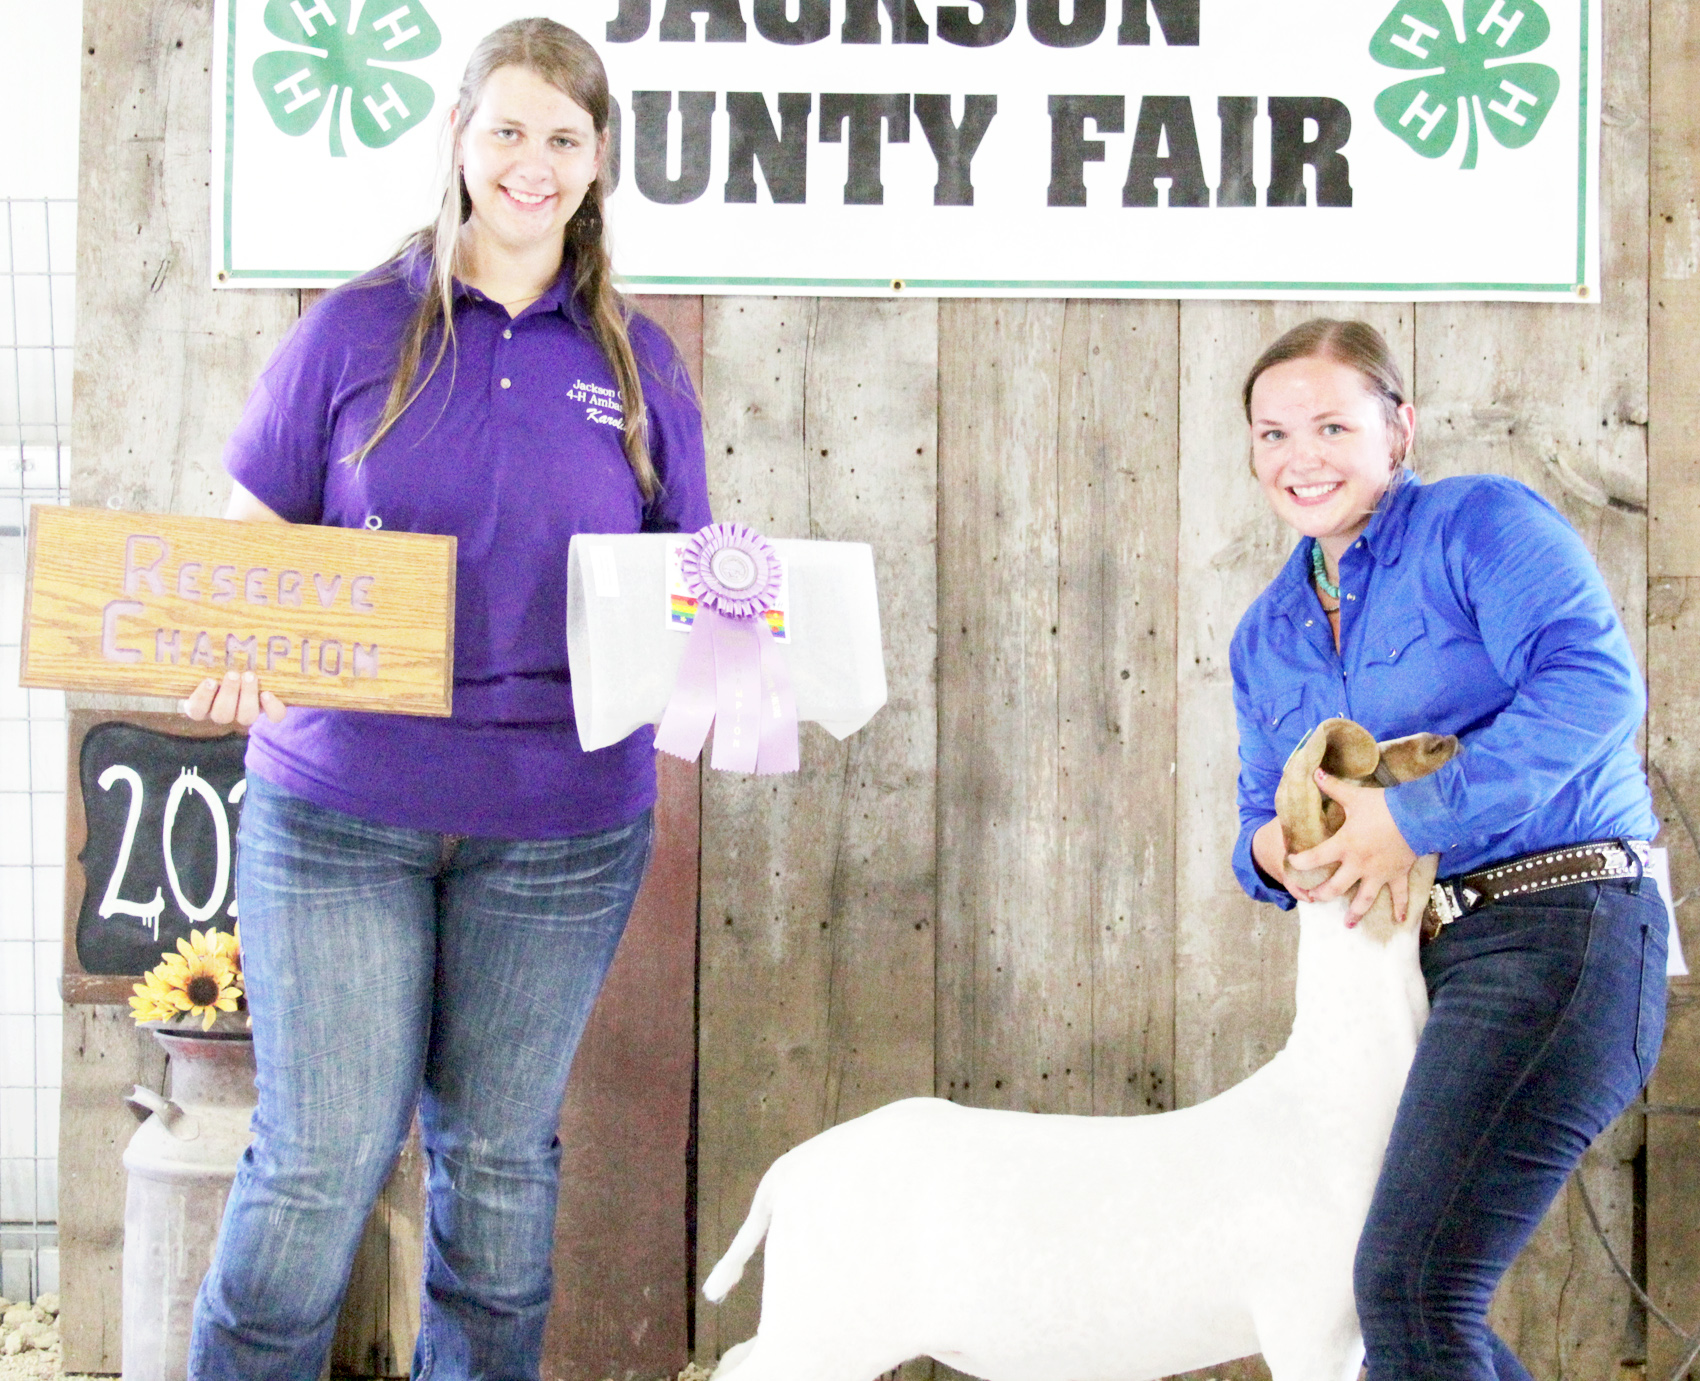 Jerilyn Nelson of the Pleasant Valley Rustlers 4-H Club showed the Reserve Grand Champion over all market goat at the 2020 Jackson County Fair.